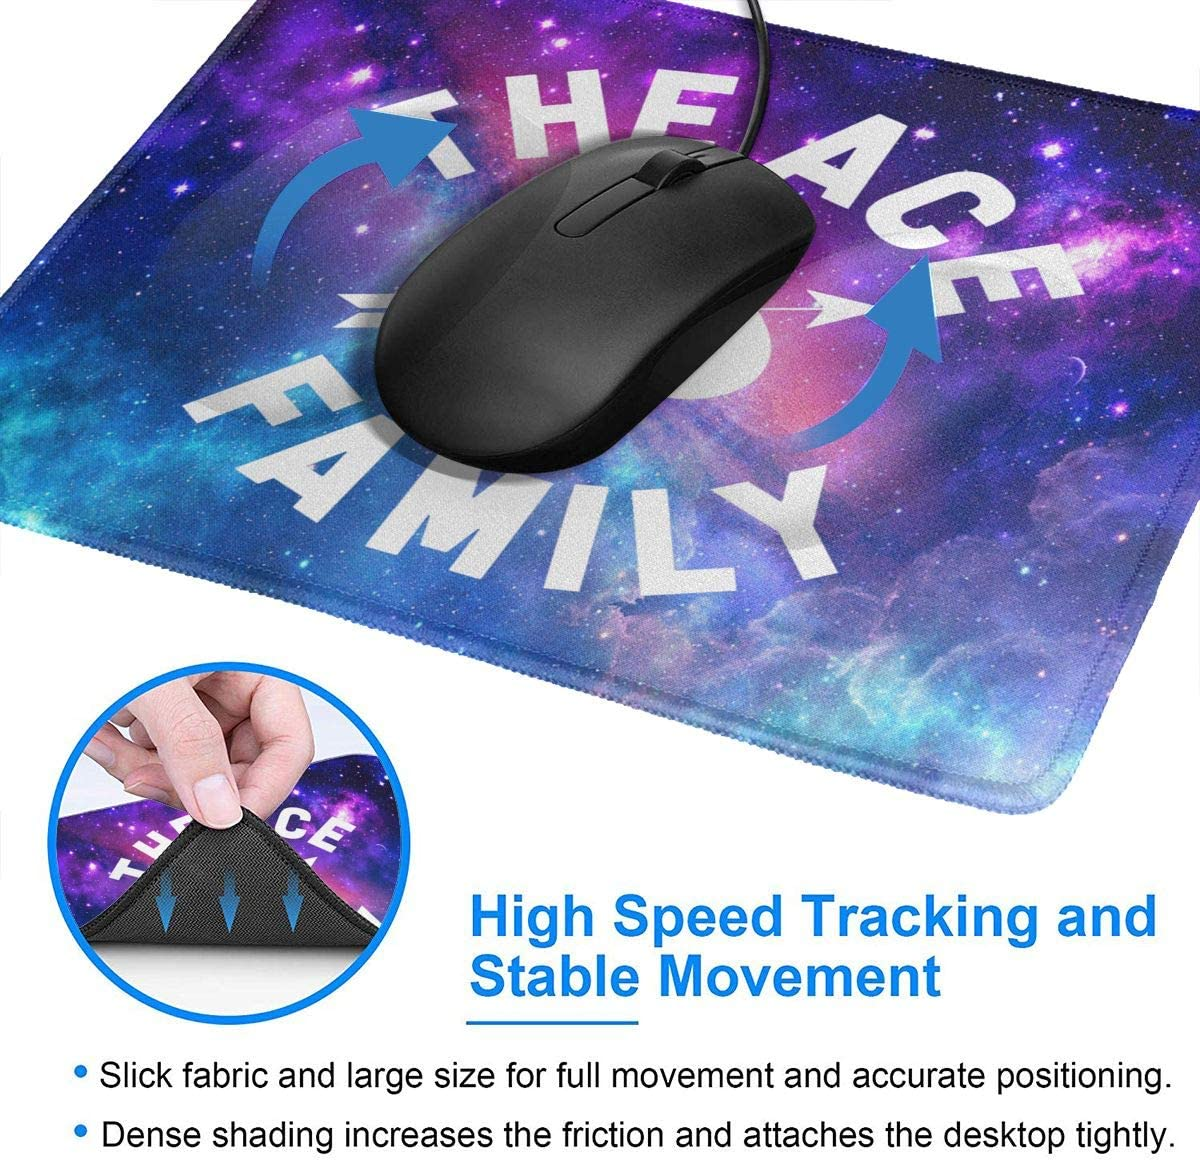 Marrh The Ace Family Mouse Pad Pattern Mousepad Non-Slip Rubber Gaming Mouse Pad Rectangle Mouse Pads for Computers Laptop7.9 X 9.5 in